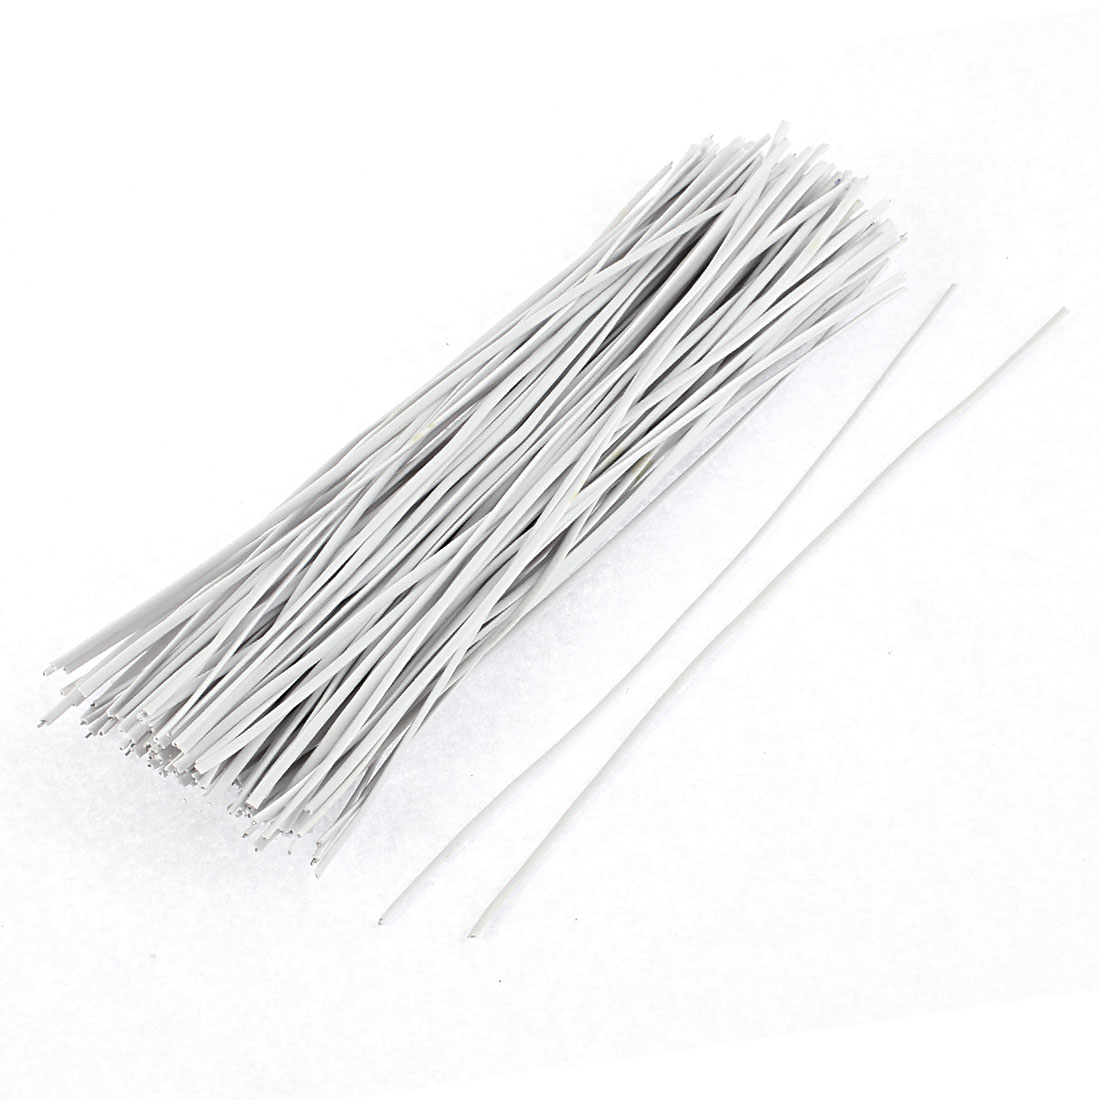 UXCELL 130Pcs 150Mm X 2Mm White Plastic Coated Metal Cord Data Cable ...